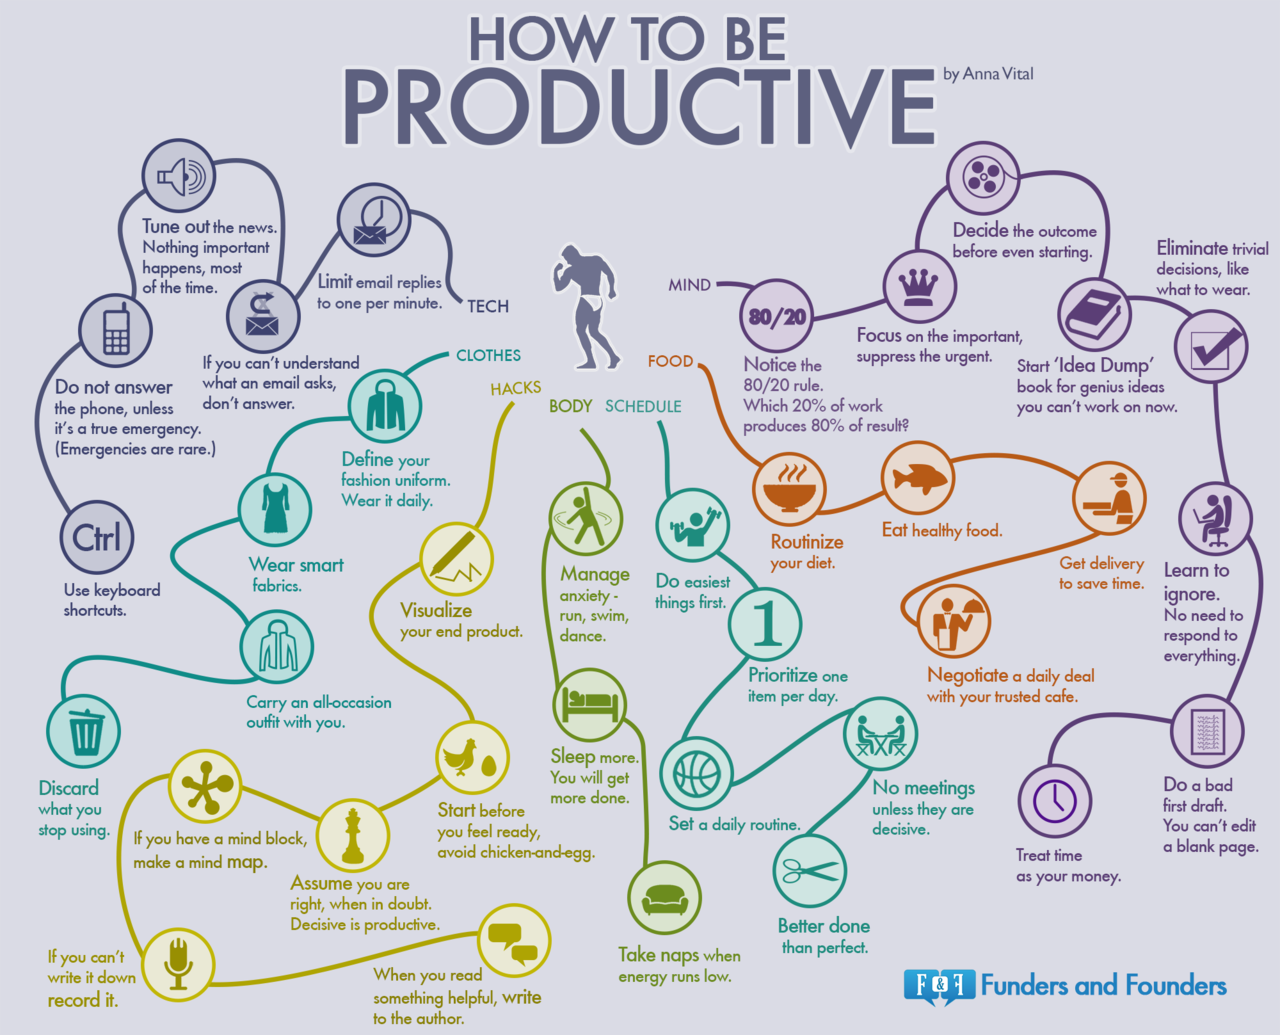 How to be productive infographic